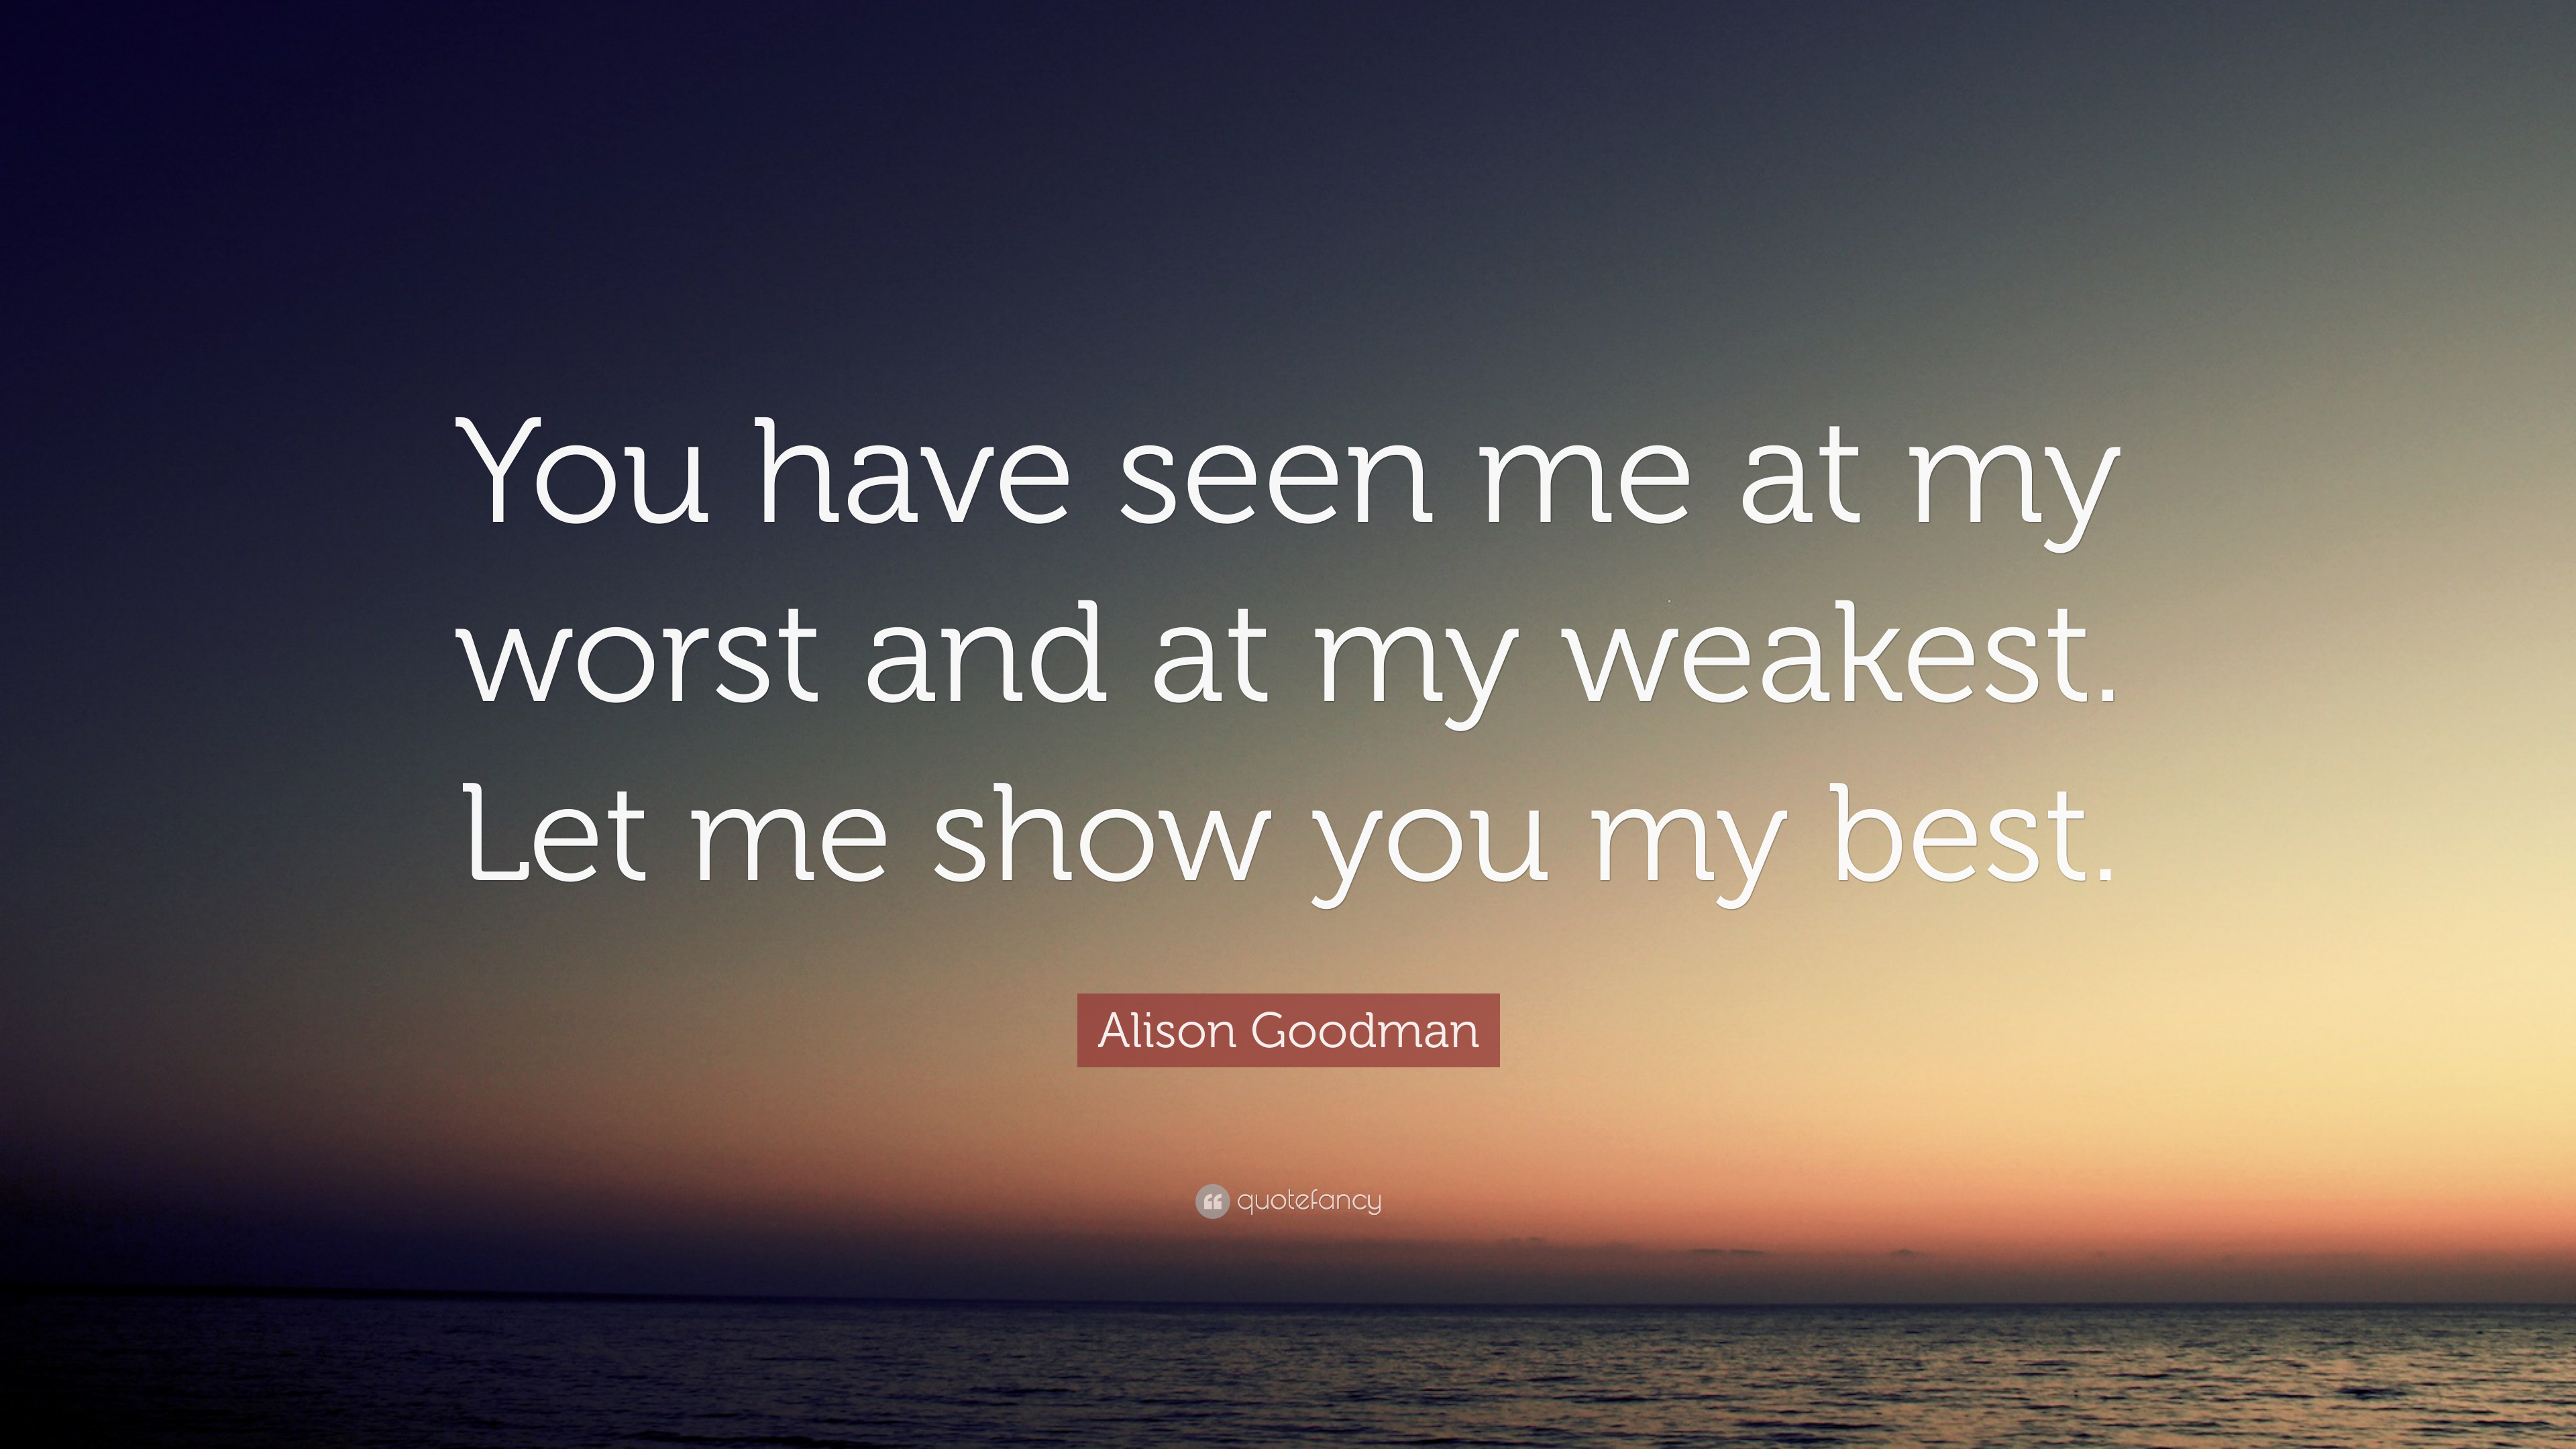 Alison Goodman Quote You Have Seen Me At My Worst And At My